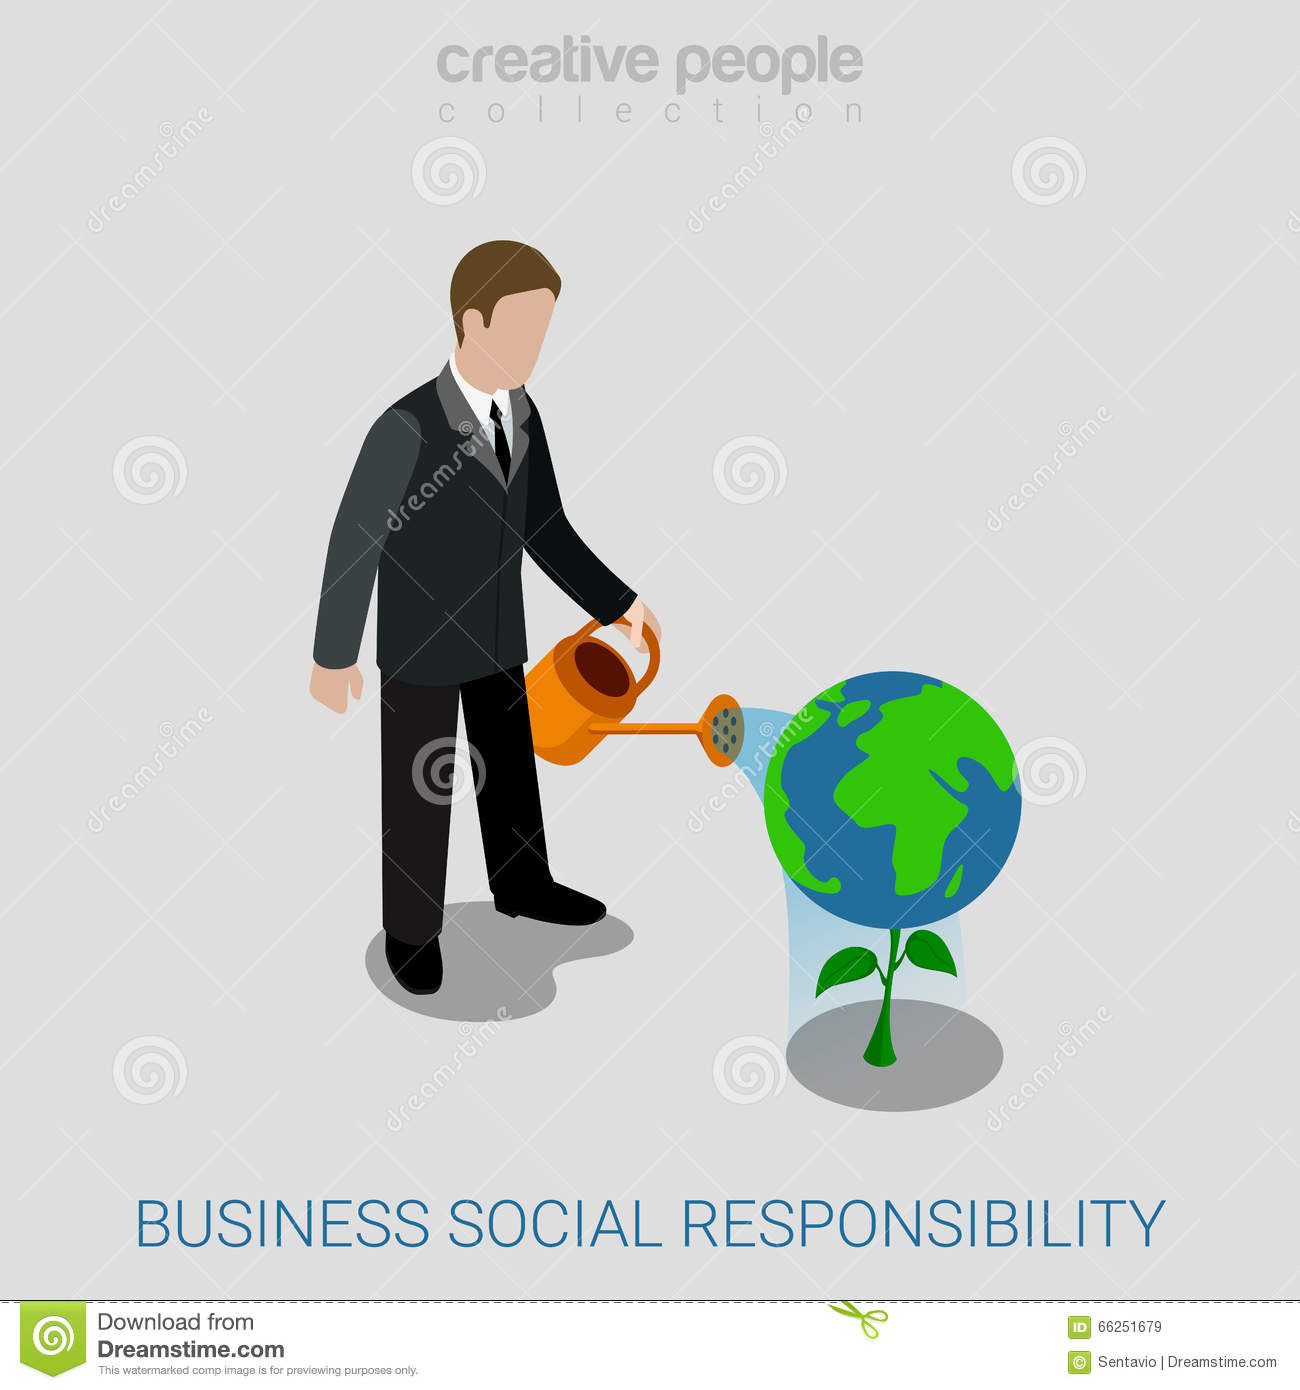 the concept of corporate social responsibility The purpose of this article on corporate social responsibility (csr) concepts and practices, referred to as just 'social responsibility' (sr) in the period before the rise and dominance of the corporate form of business organization, is to provide an overview of how the concept and practice of sr or.